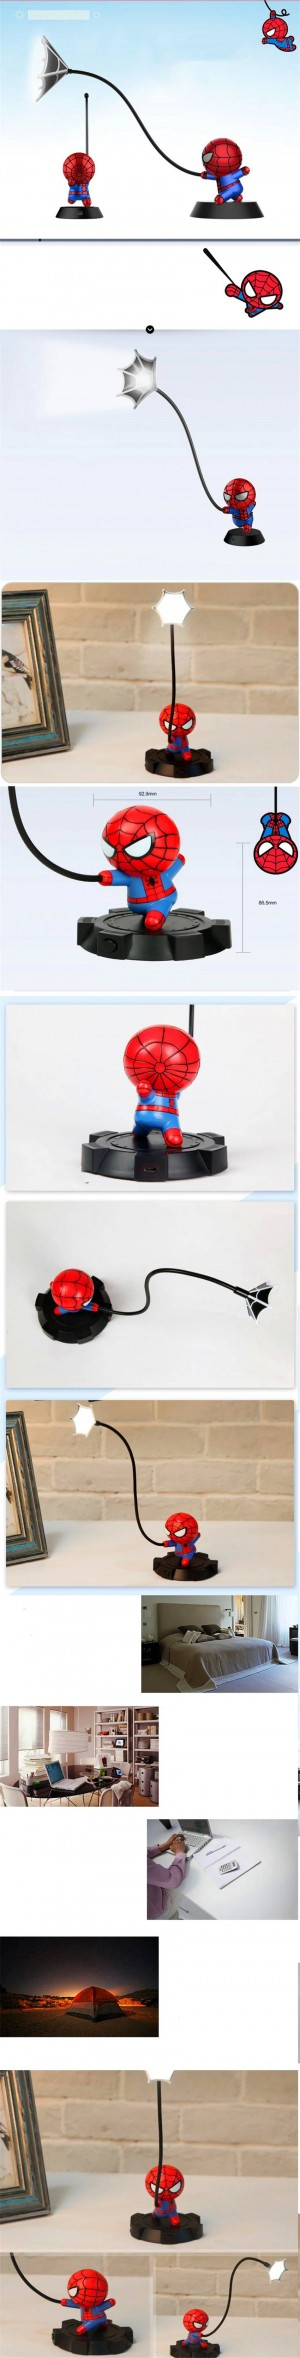 Super Spiderman Avengers Union 3 Led Night Light Light Resin Craft Kids Home Desktop Lámpara de mesa Figurines Cumpleaños Navidad regalos de boda